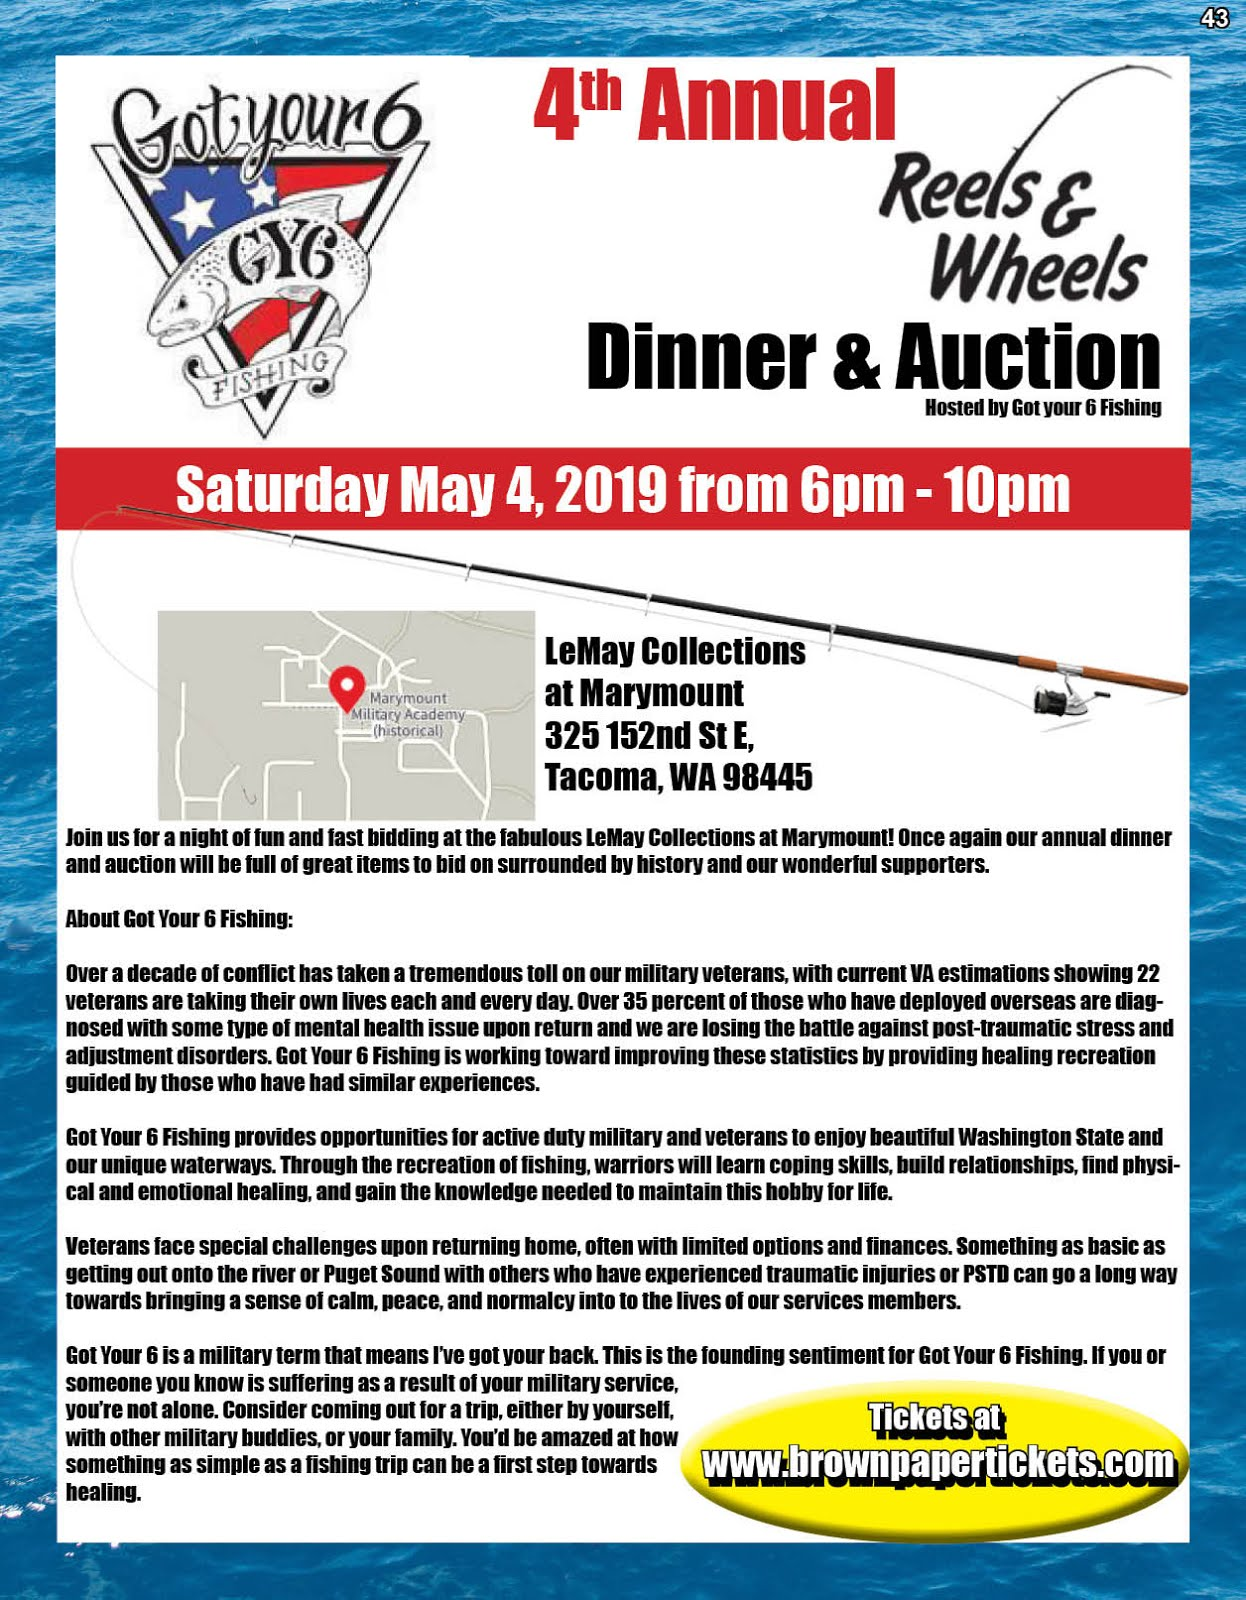 Got Your 6 4th Annual Reels to Wheels Event